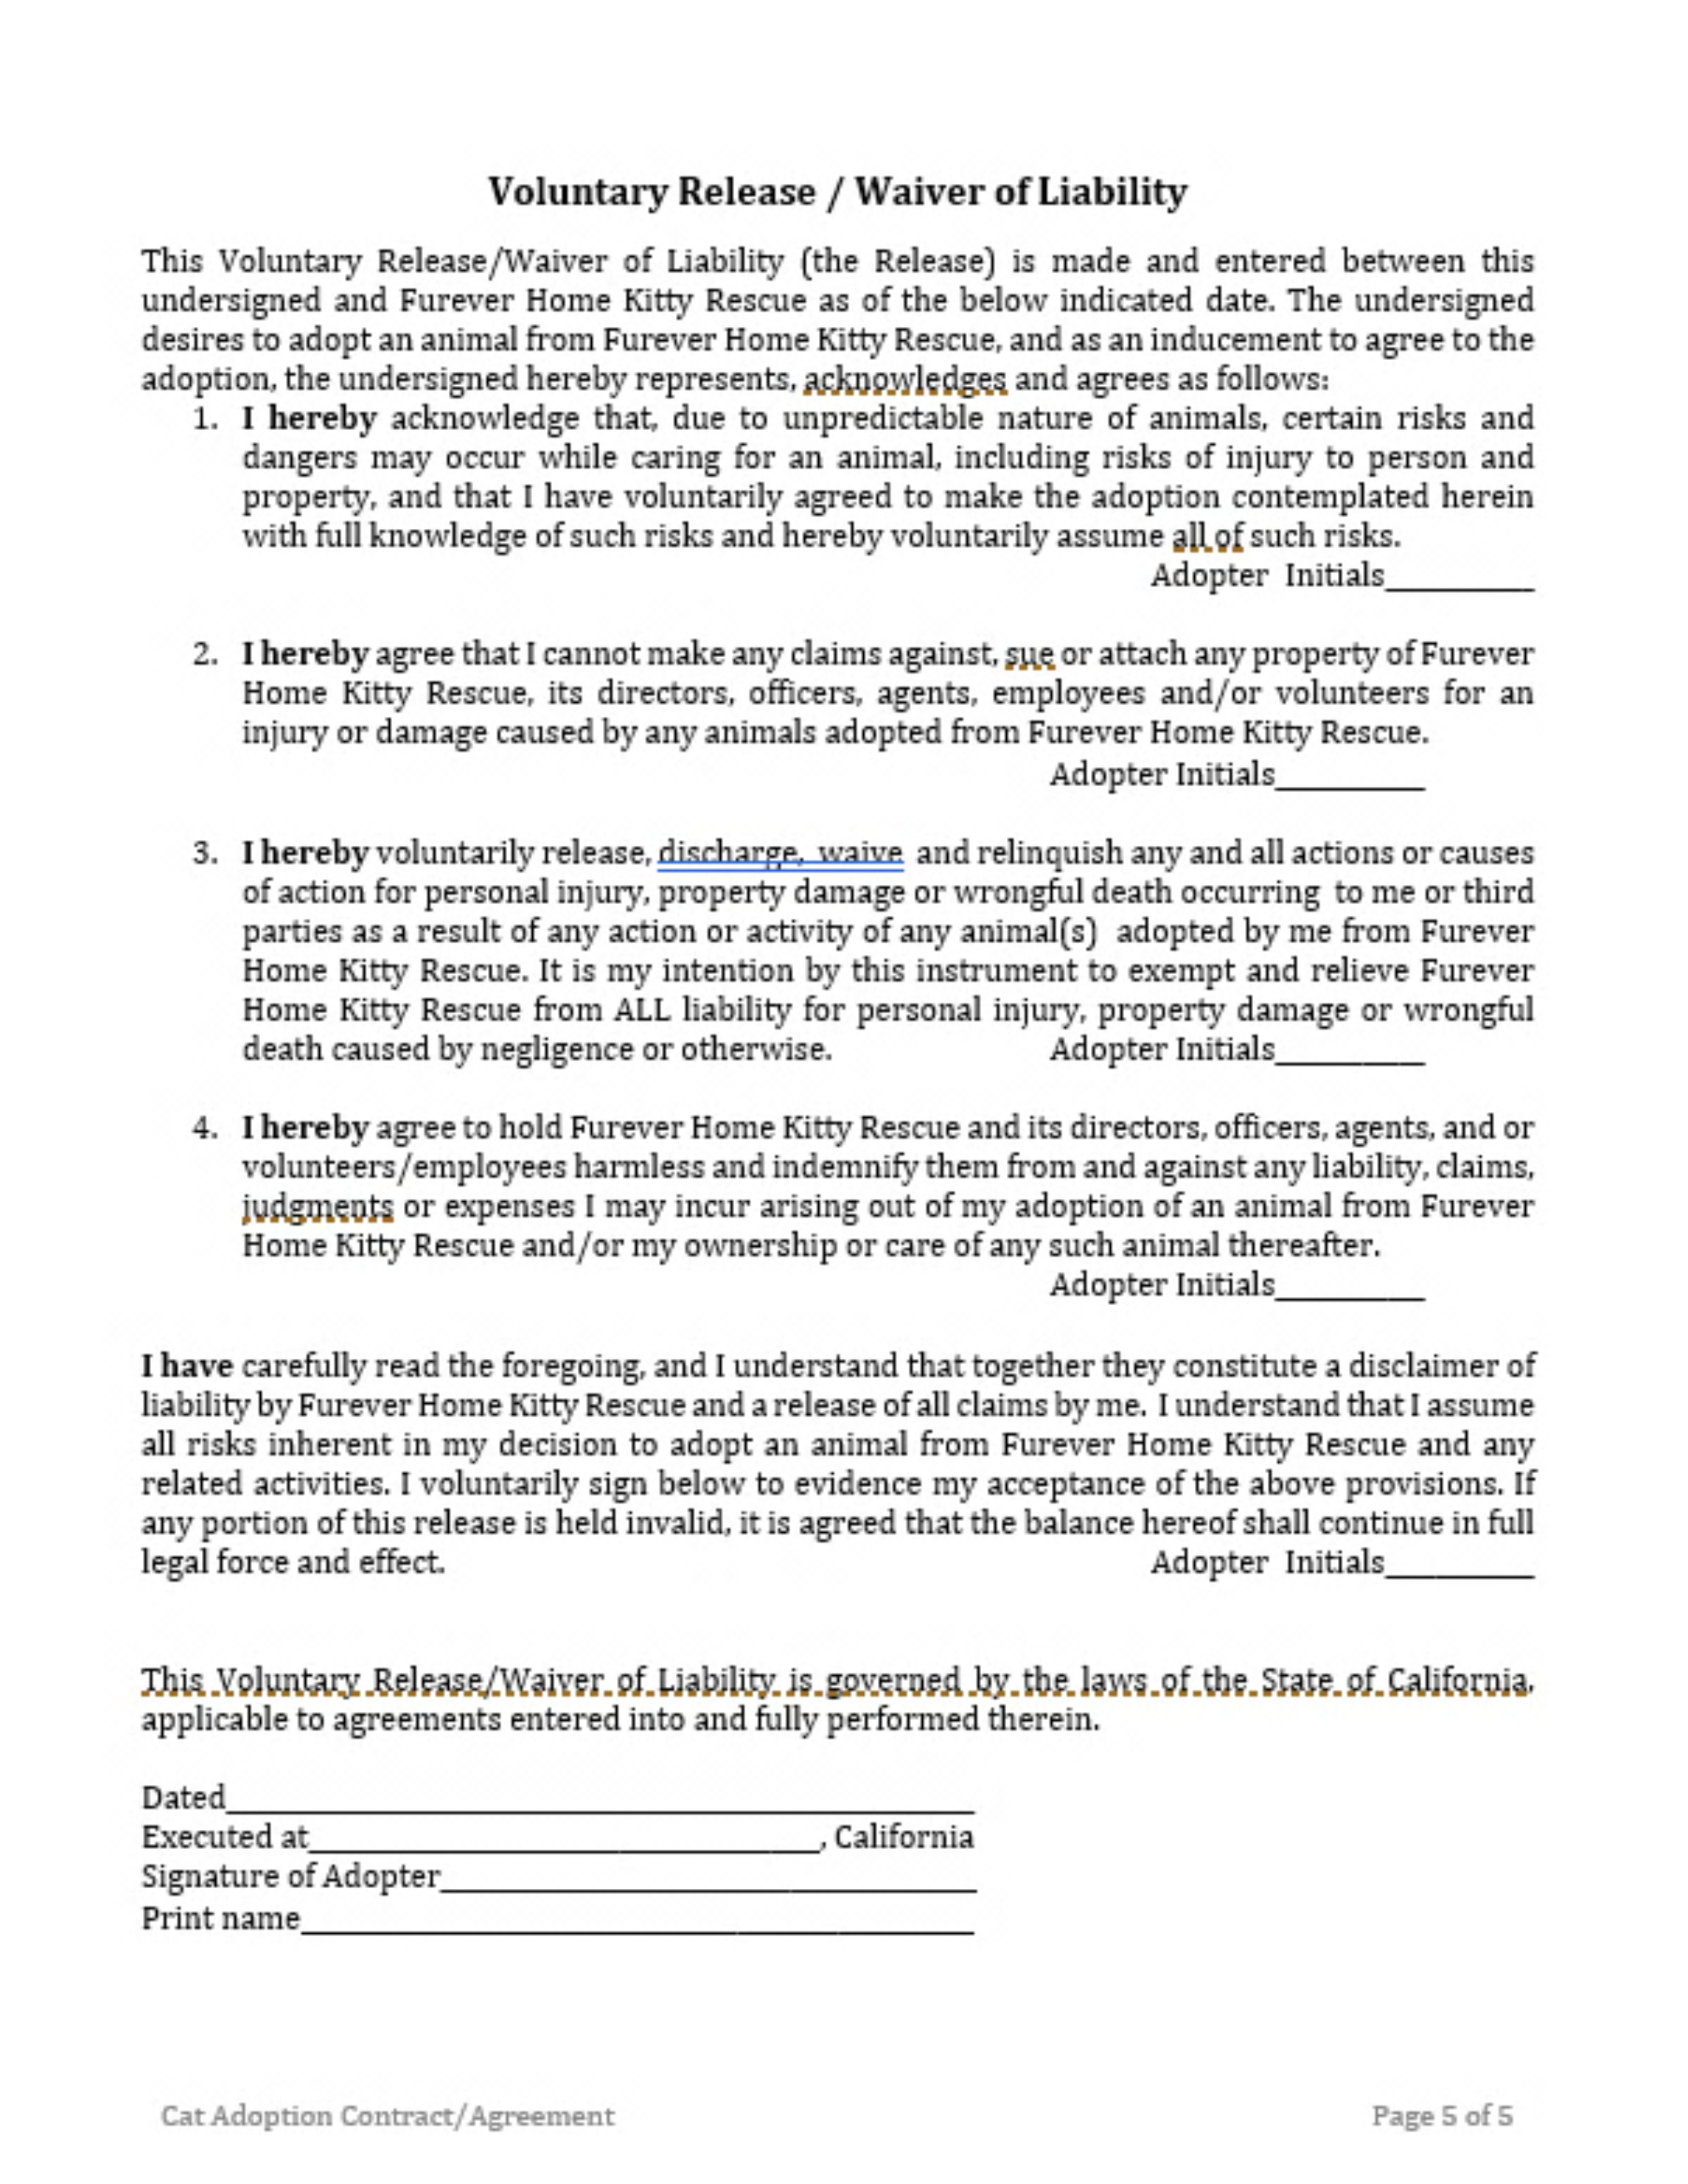 fhkr adoption contract04